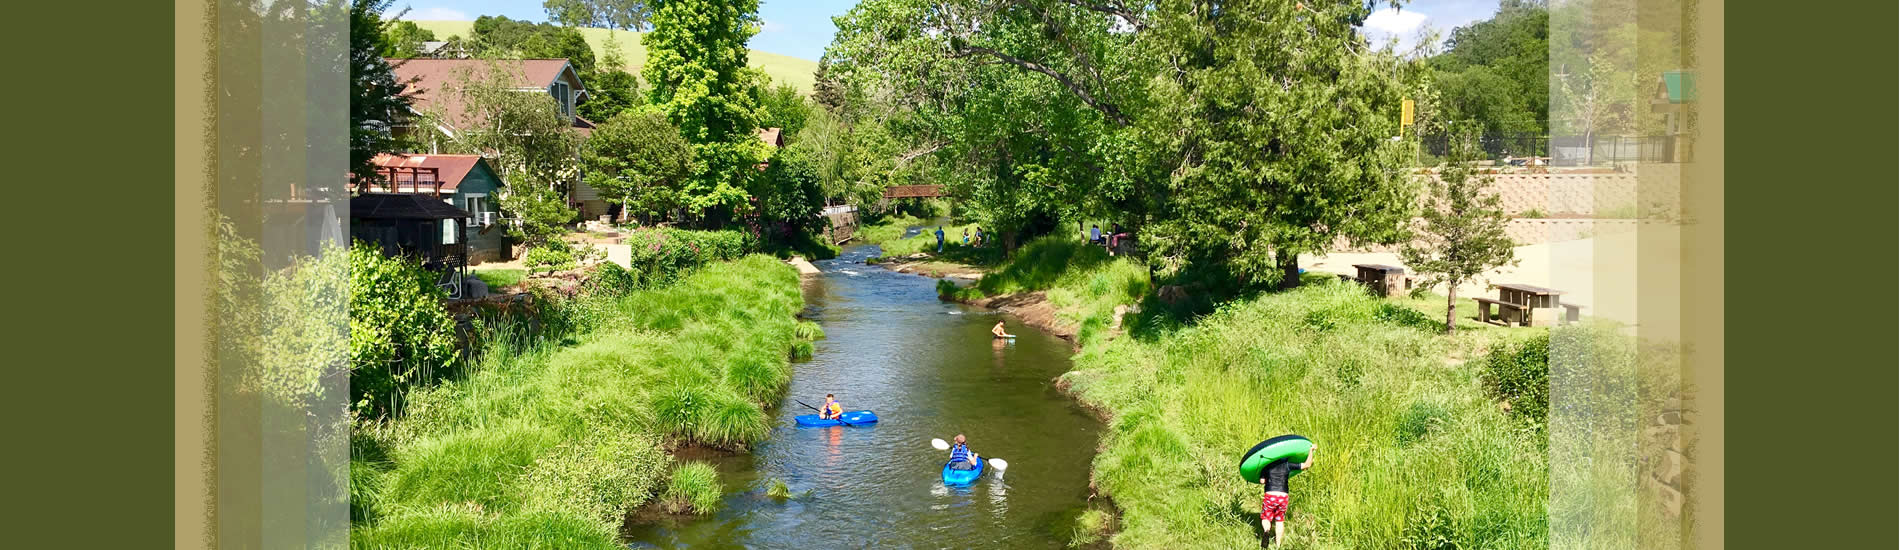 city of sutter creek announcements - creek with children playing